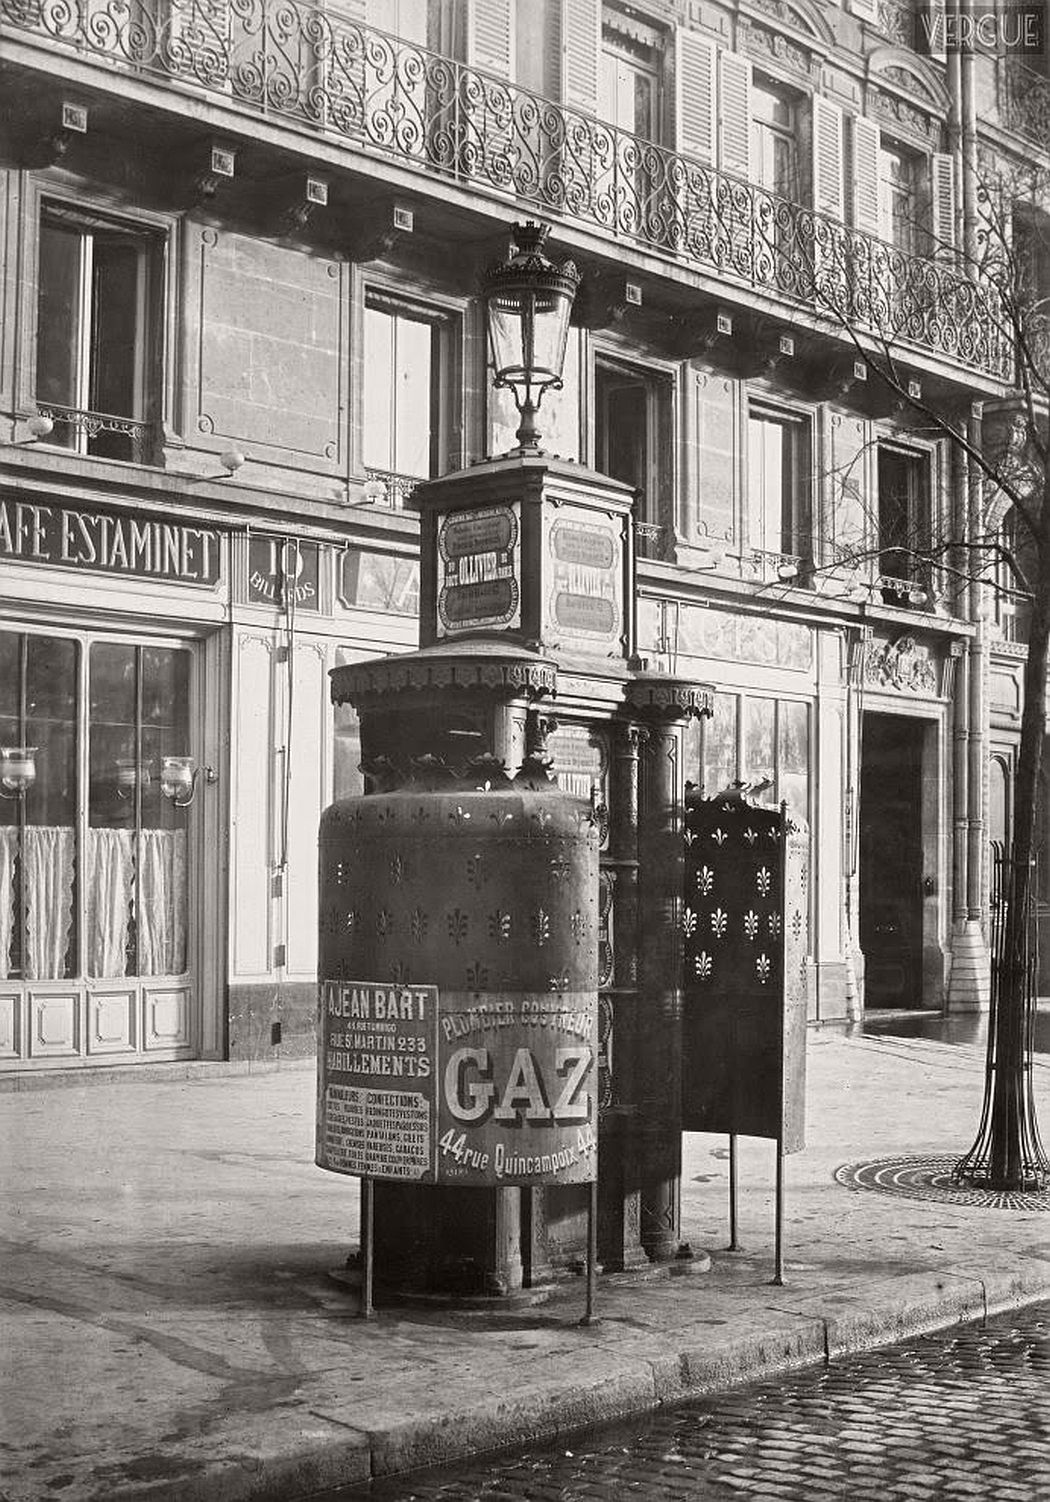 vintage-public-urinals-in-paris-by-charles-marville-19th-century-08